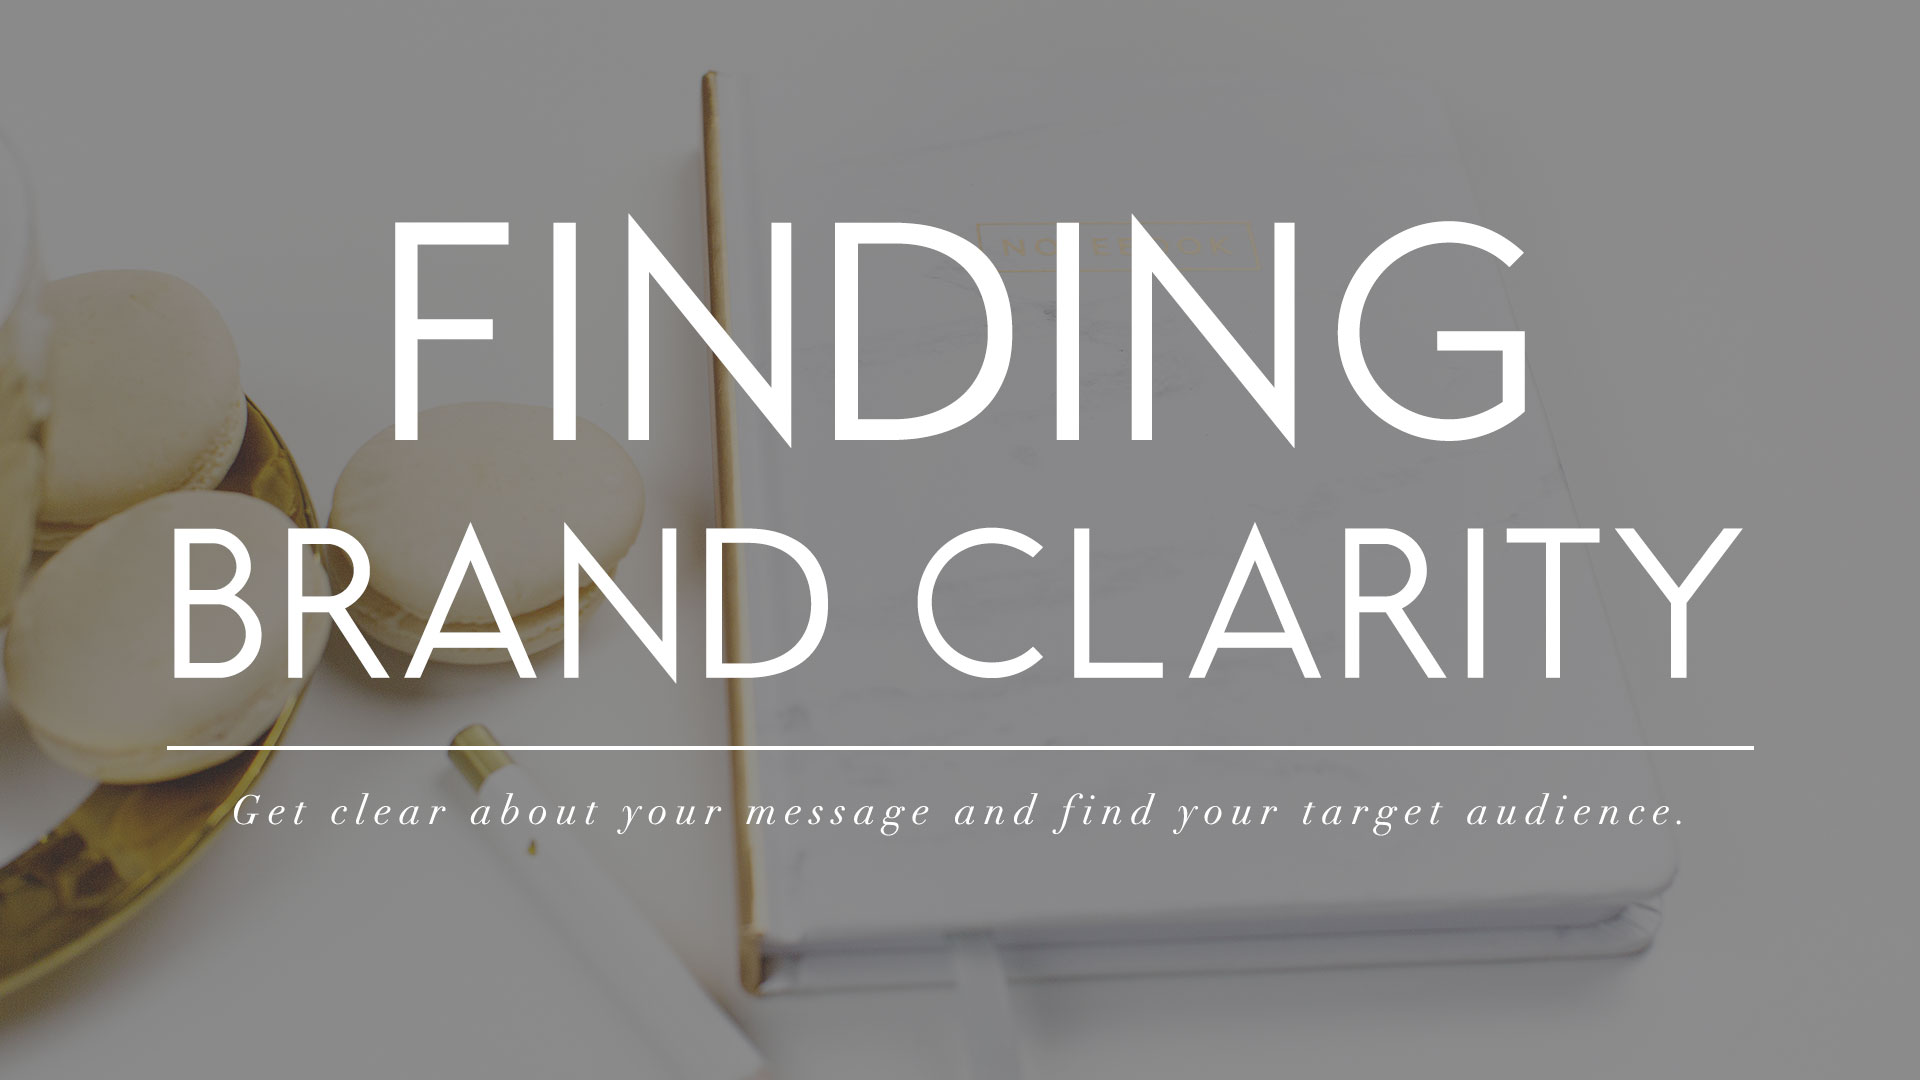 Finding Brand Clarity